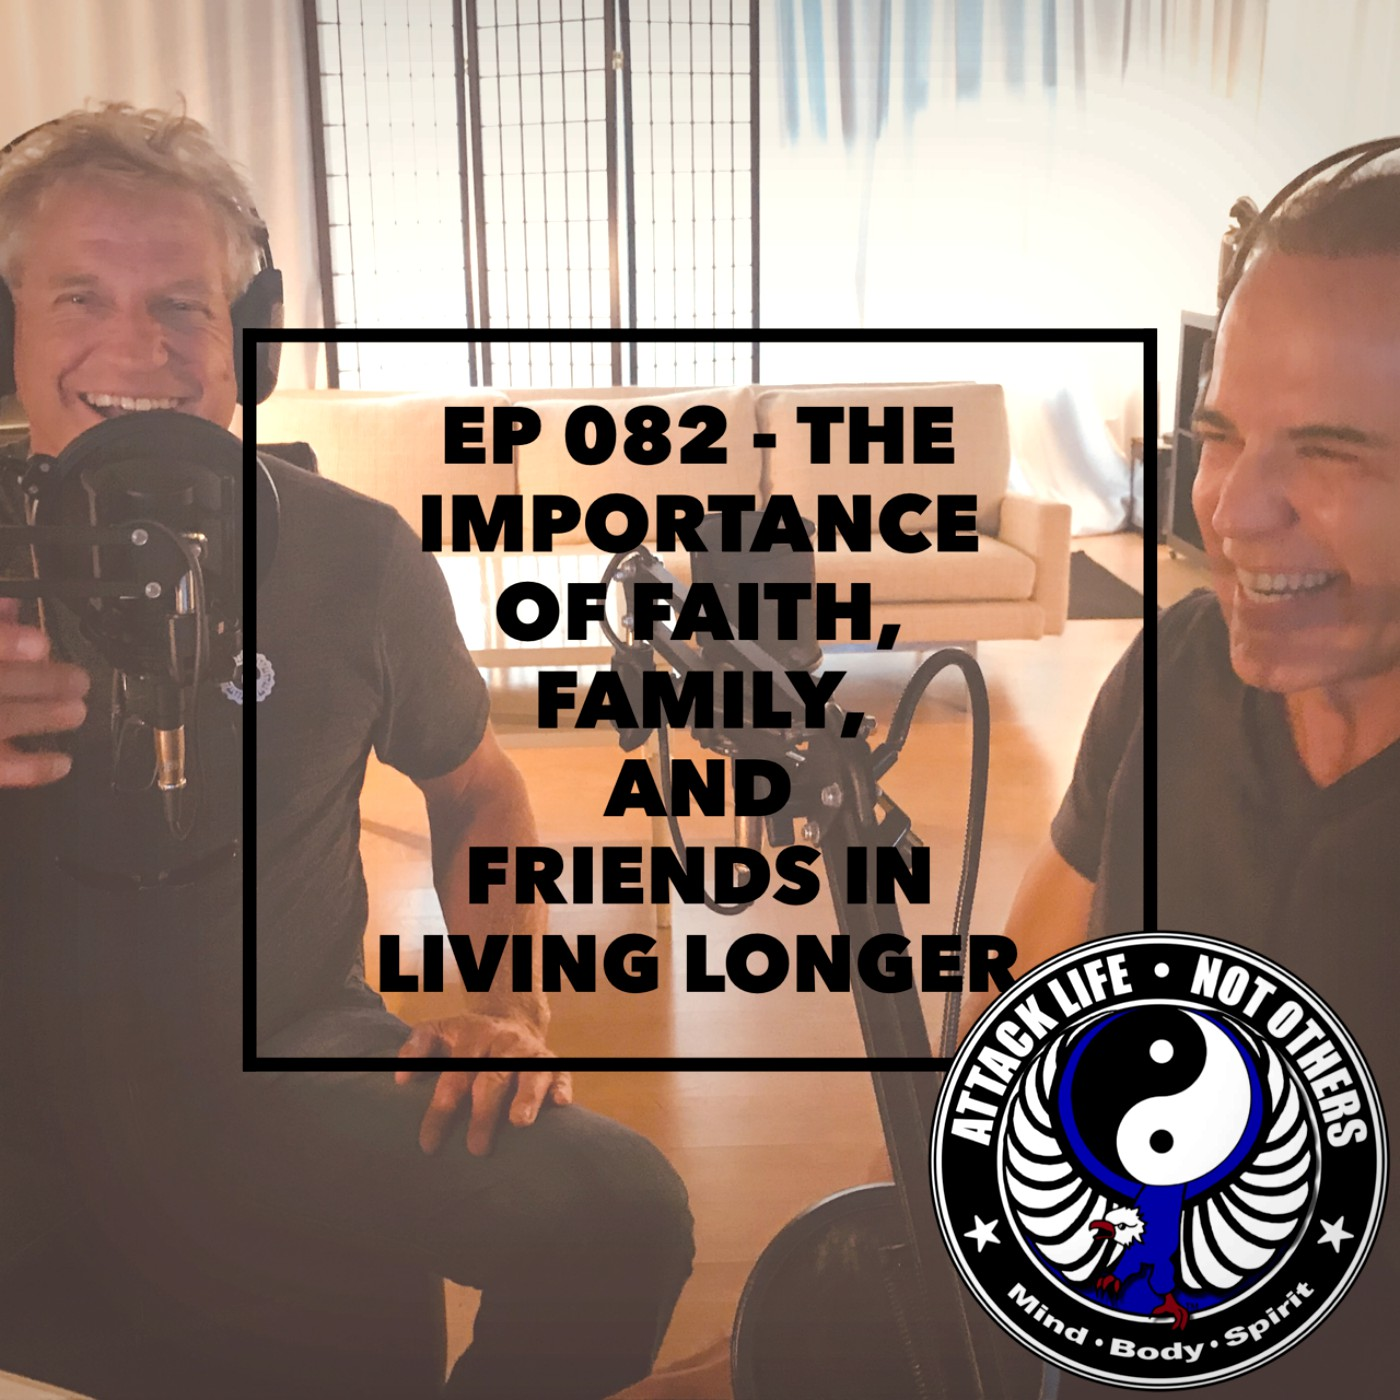 Ep 082 - The Importance of Faith, Family, and Friends in Living Longer